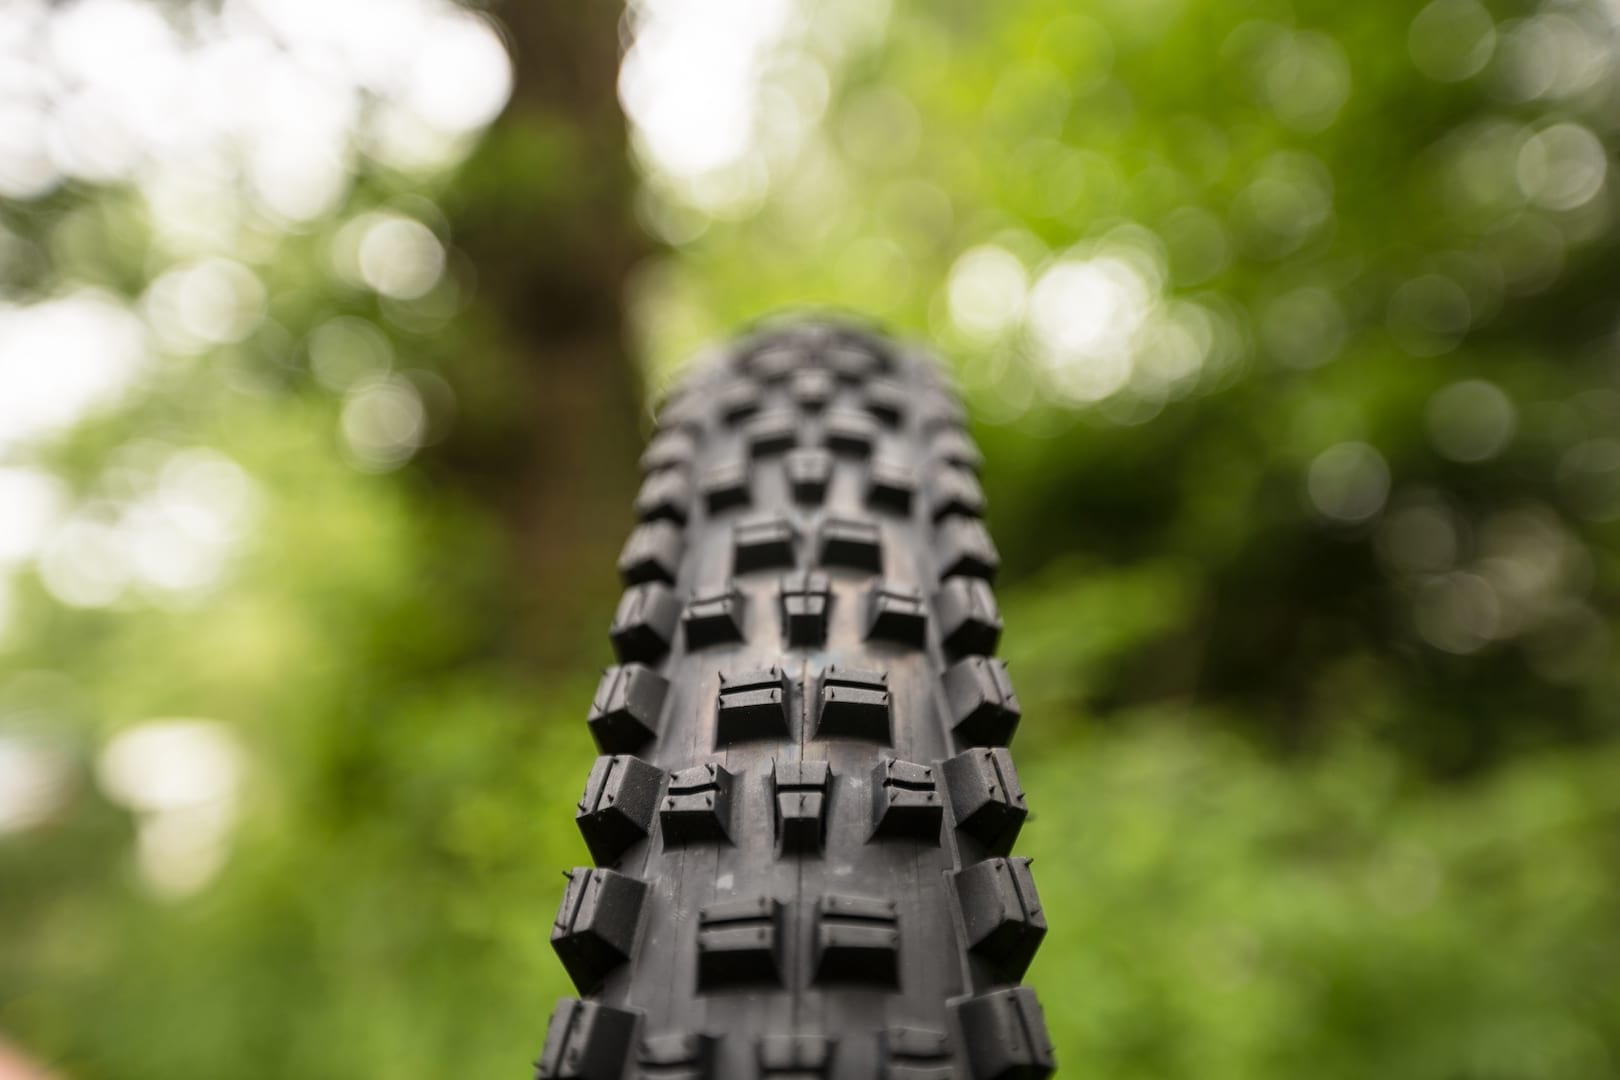 WTB Trail Boss, mountainbike, mountain bike, race, cycle, steel, steel full suspension, full suspension, uk, made in britain, made in the uk, hand made, handmade, sheffield, england, peak district, peaks, steel, coptic, coatic, steel is real, mountain, trail, adventure, escape, bike